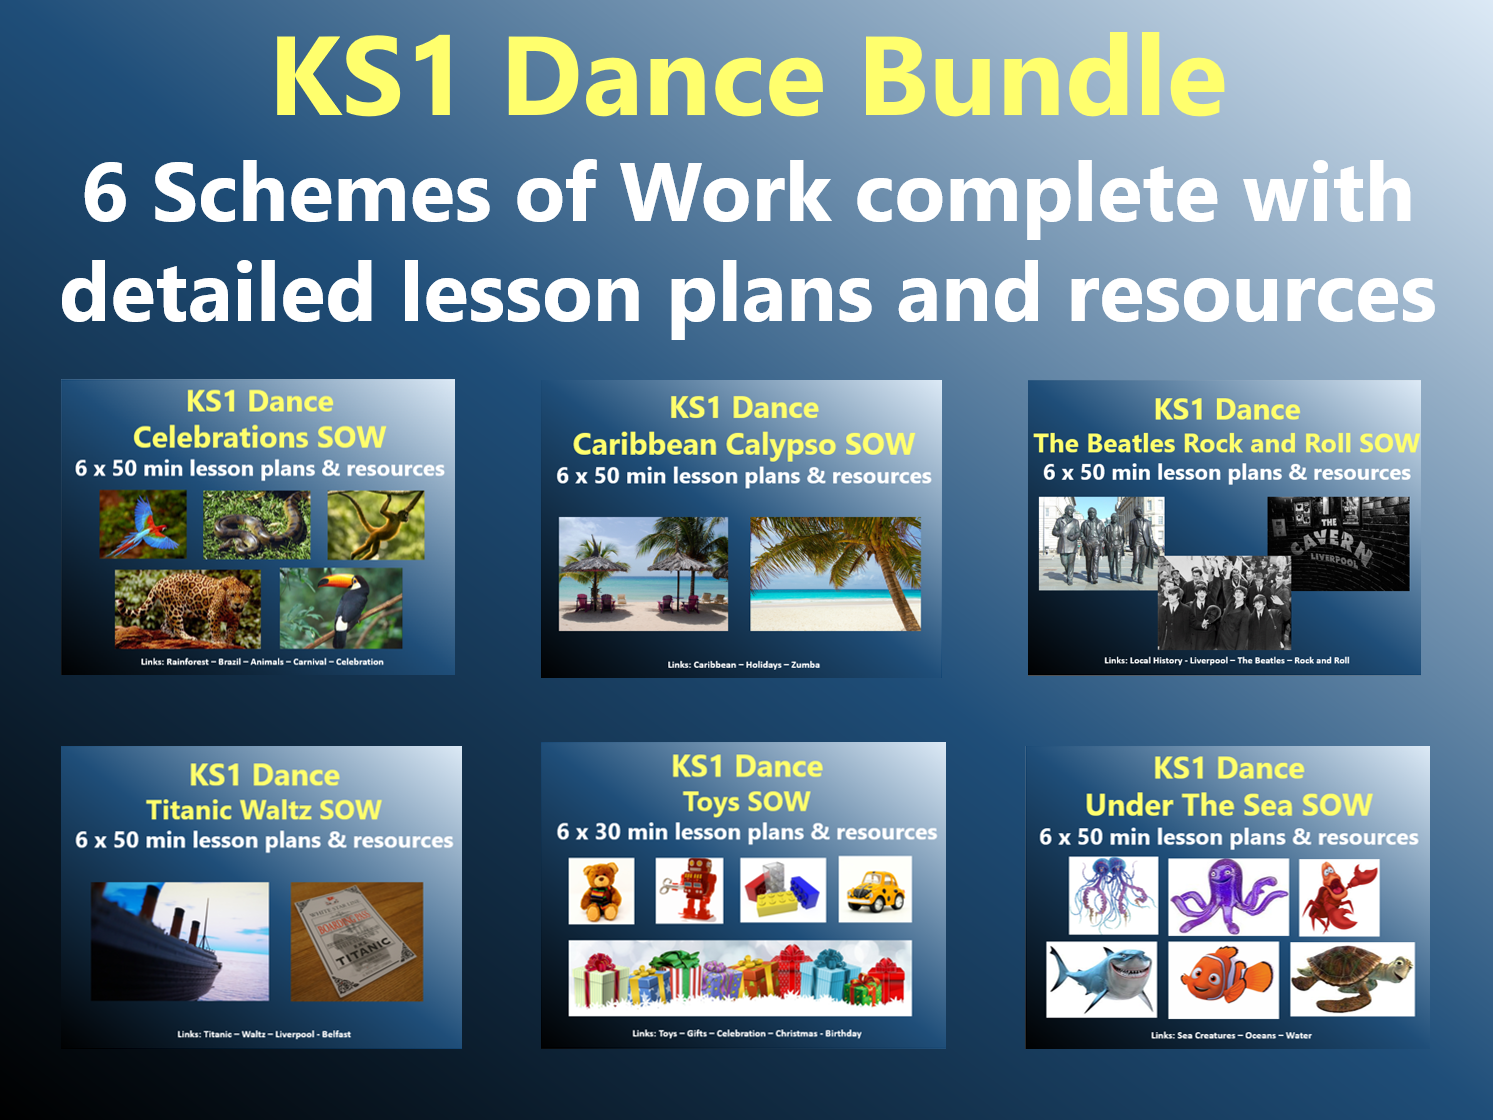 KS1 Dance Bundle